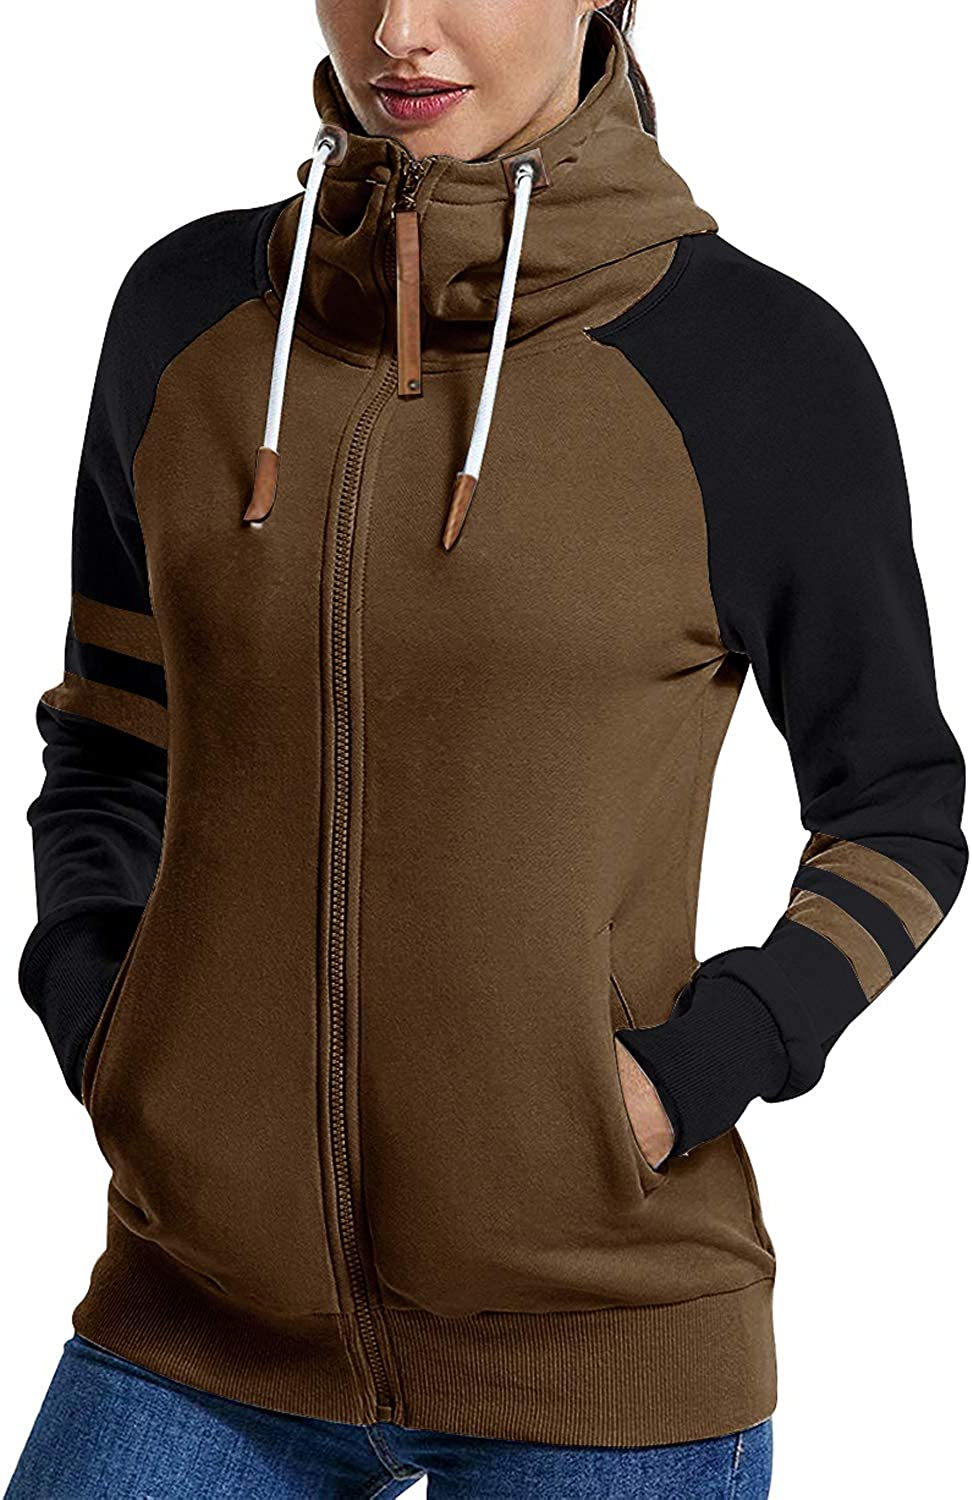 Hiistandd Women Hoodies Sweatshirt Winter Warm Hoodie Zip Up Fleece Hooded Zipper Hoody Outerwear Jacket Coat Long Sleeve Jumper Long Tops Hooded Jumper Brown N7